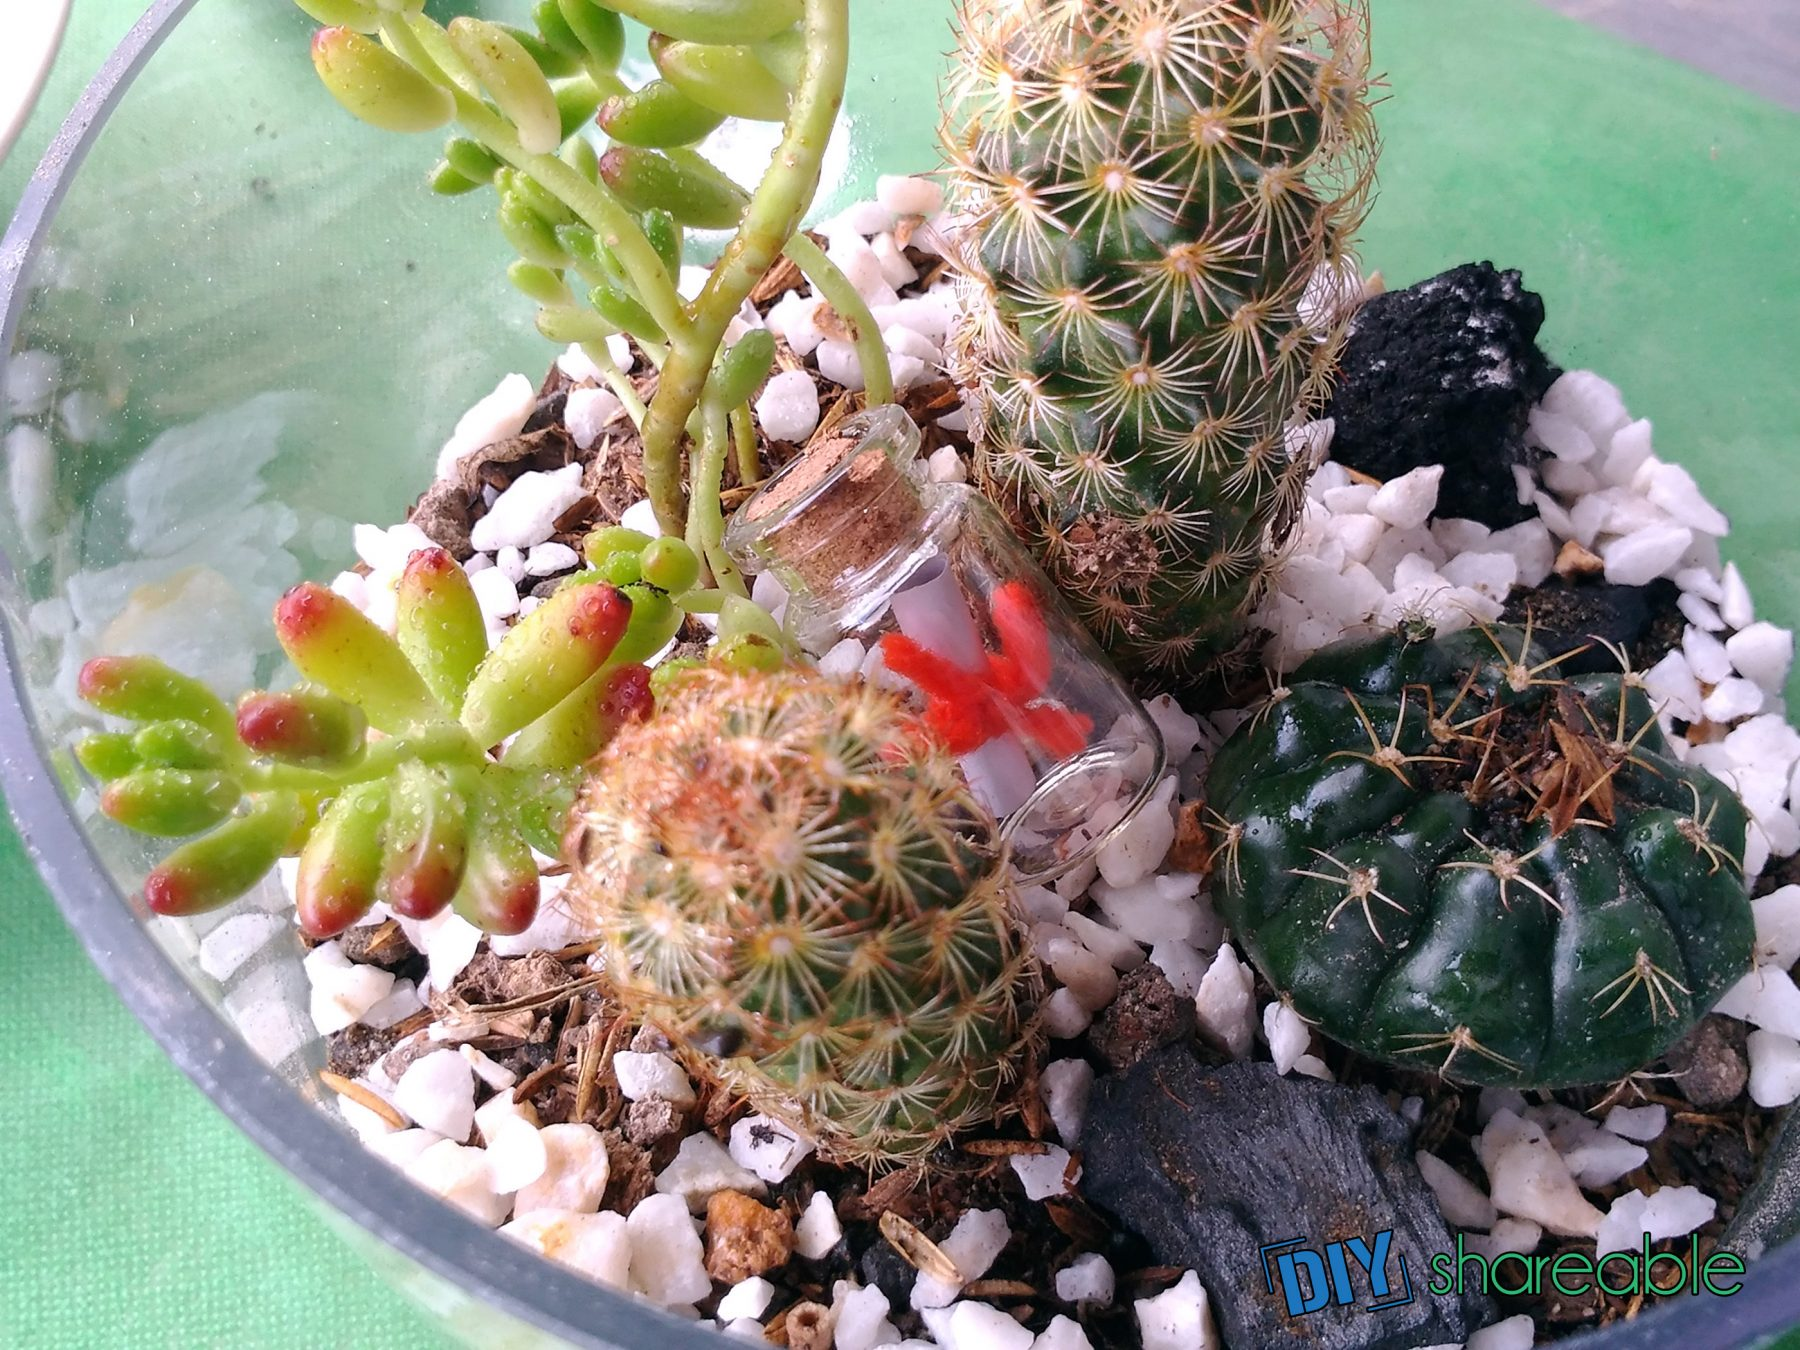 How To Make a Cool, Tiny DIY Succulent Terrarium (7 STEPS)